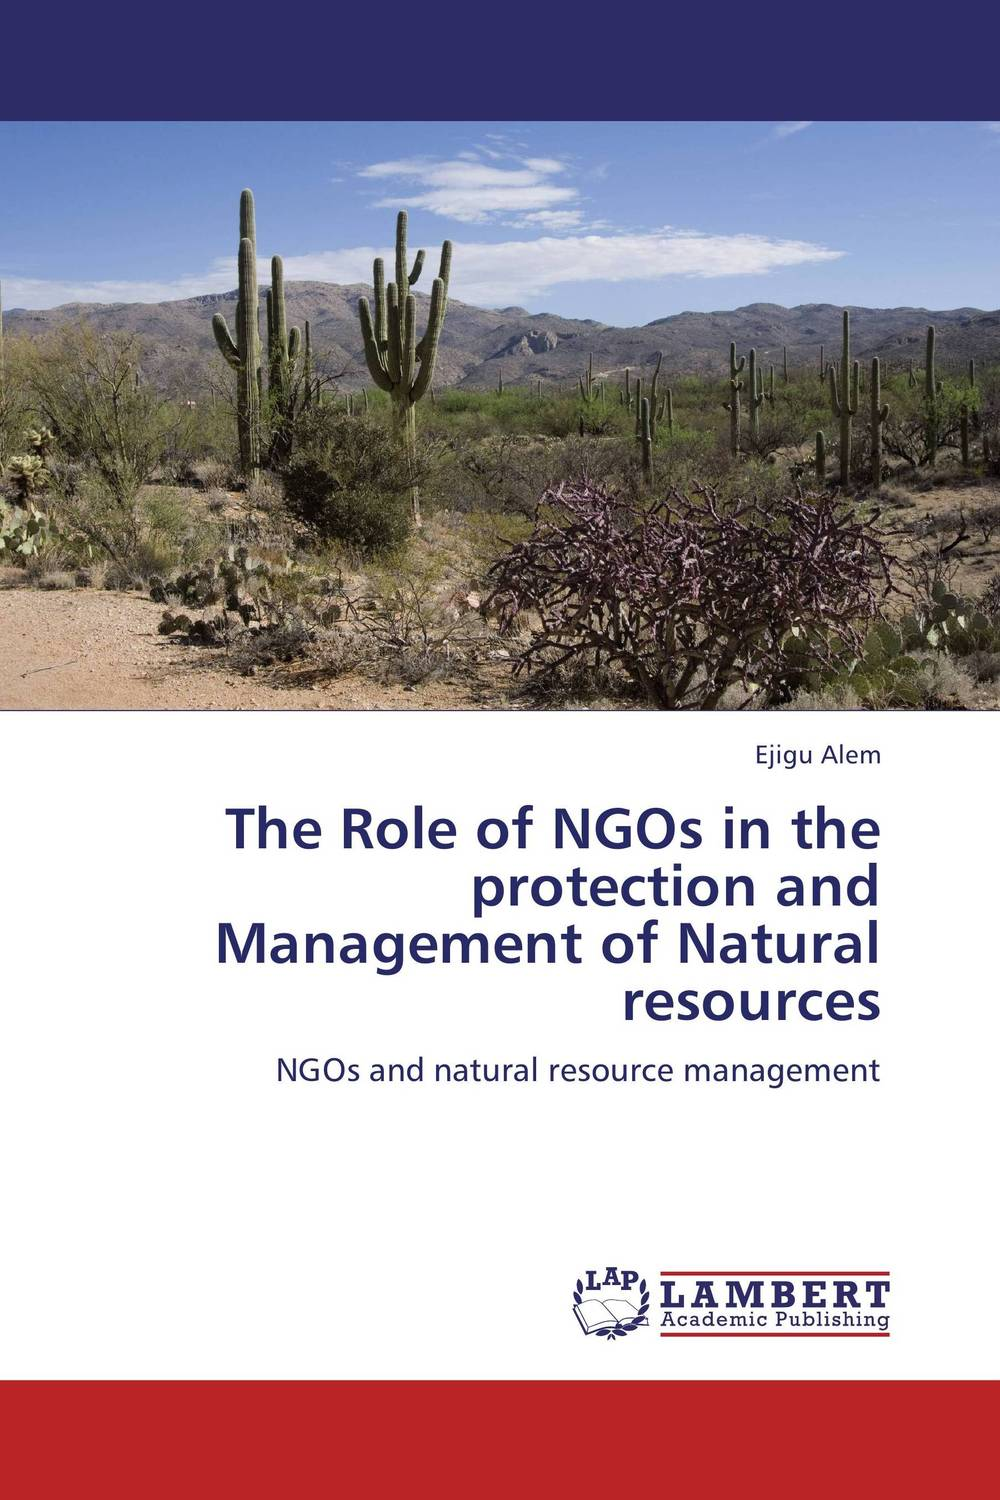 The Role of NGOs in the protection and Management of Natural resources an epidemiological study of natural deaths in limpopo